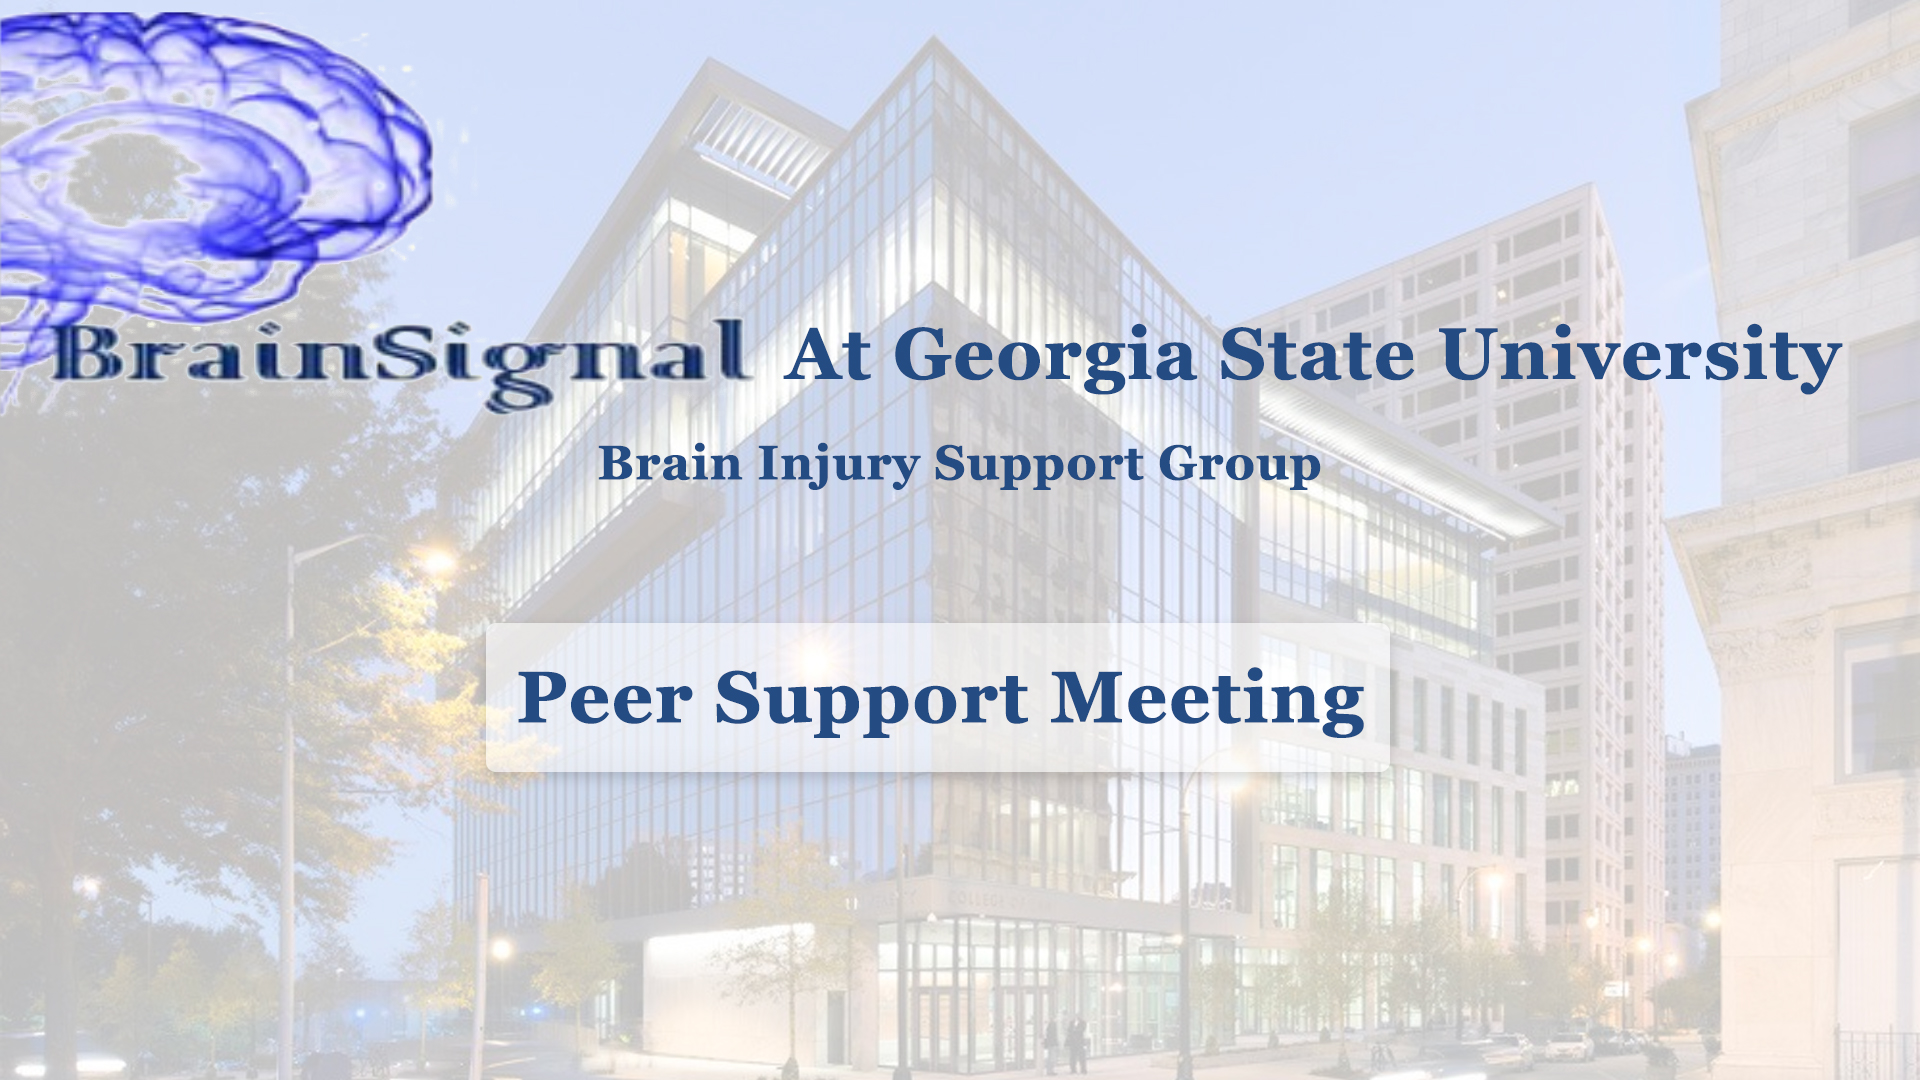 BrainSignal's July 11th Peer Support Meeting